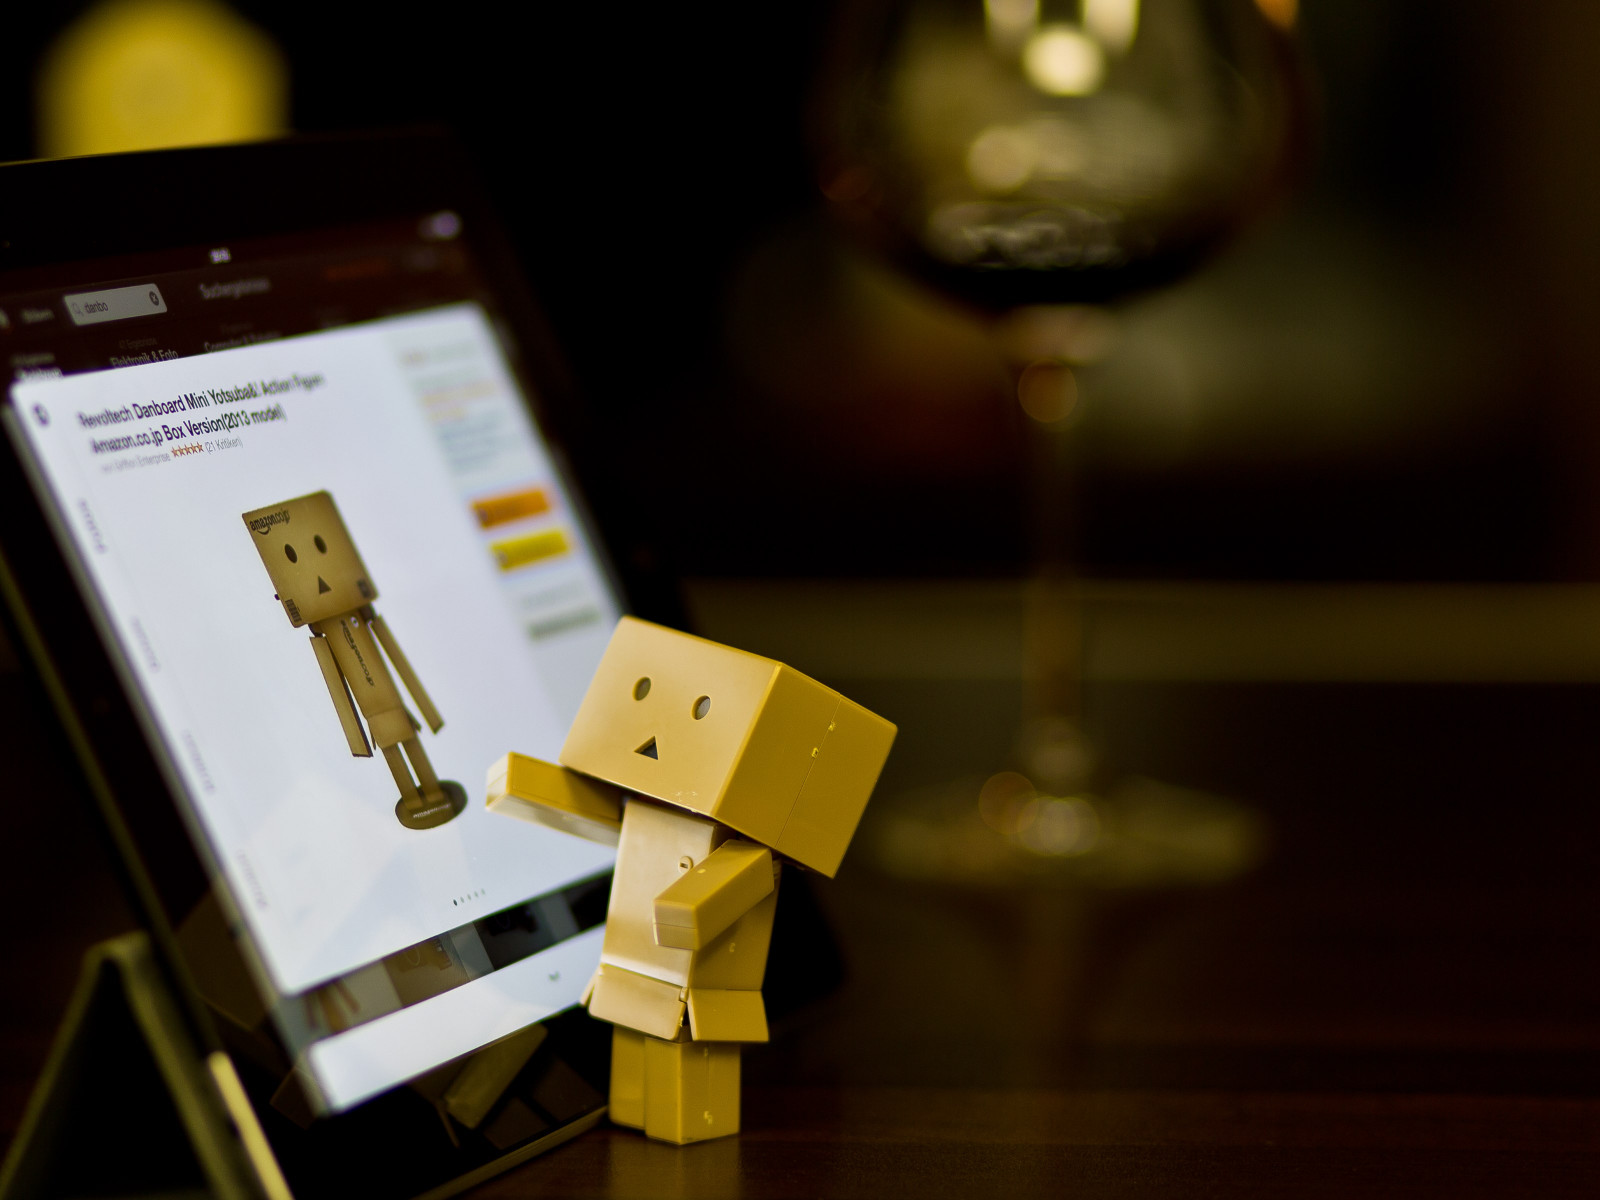 Danbo with tablet | 1600x1200 wallpaper